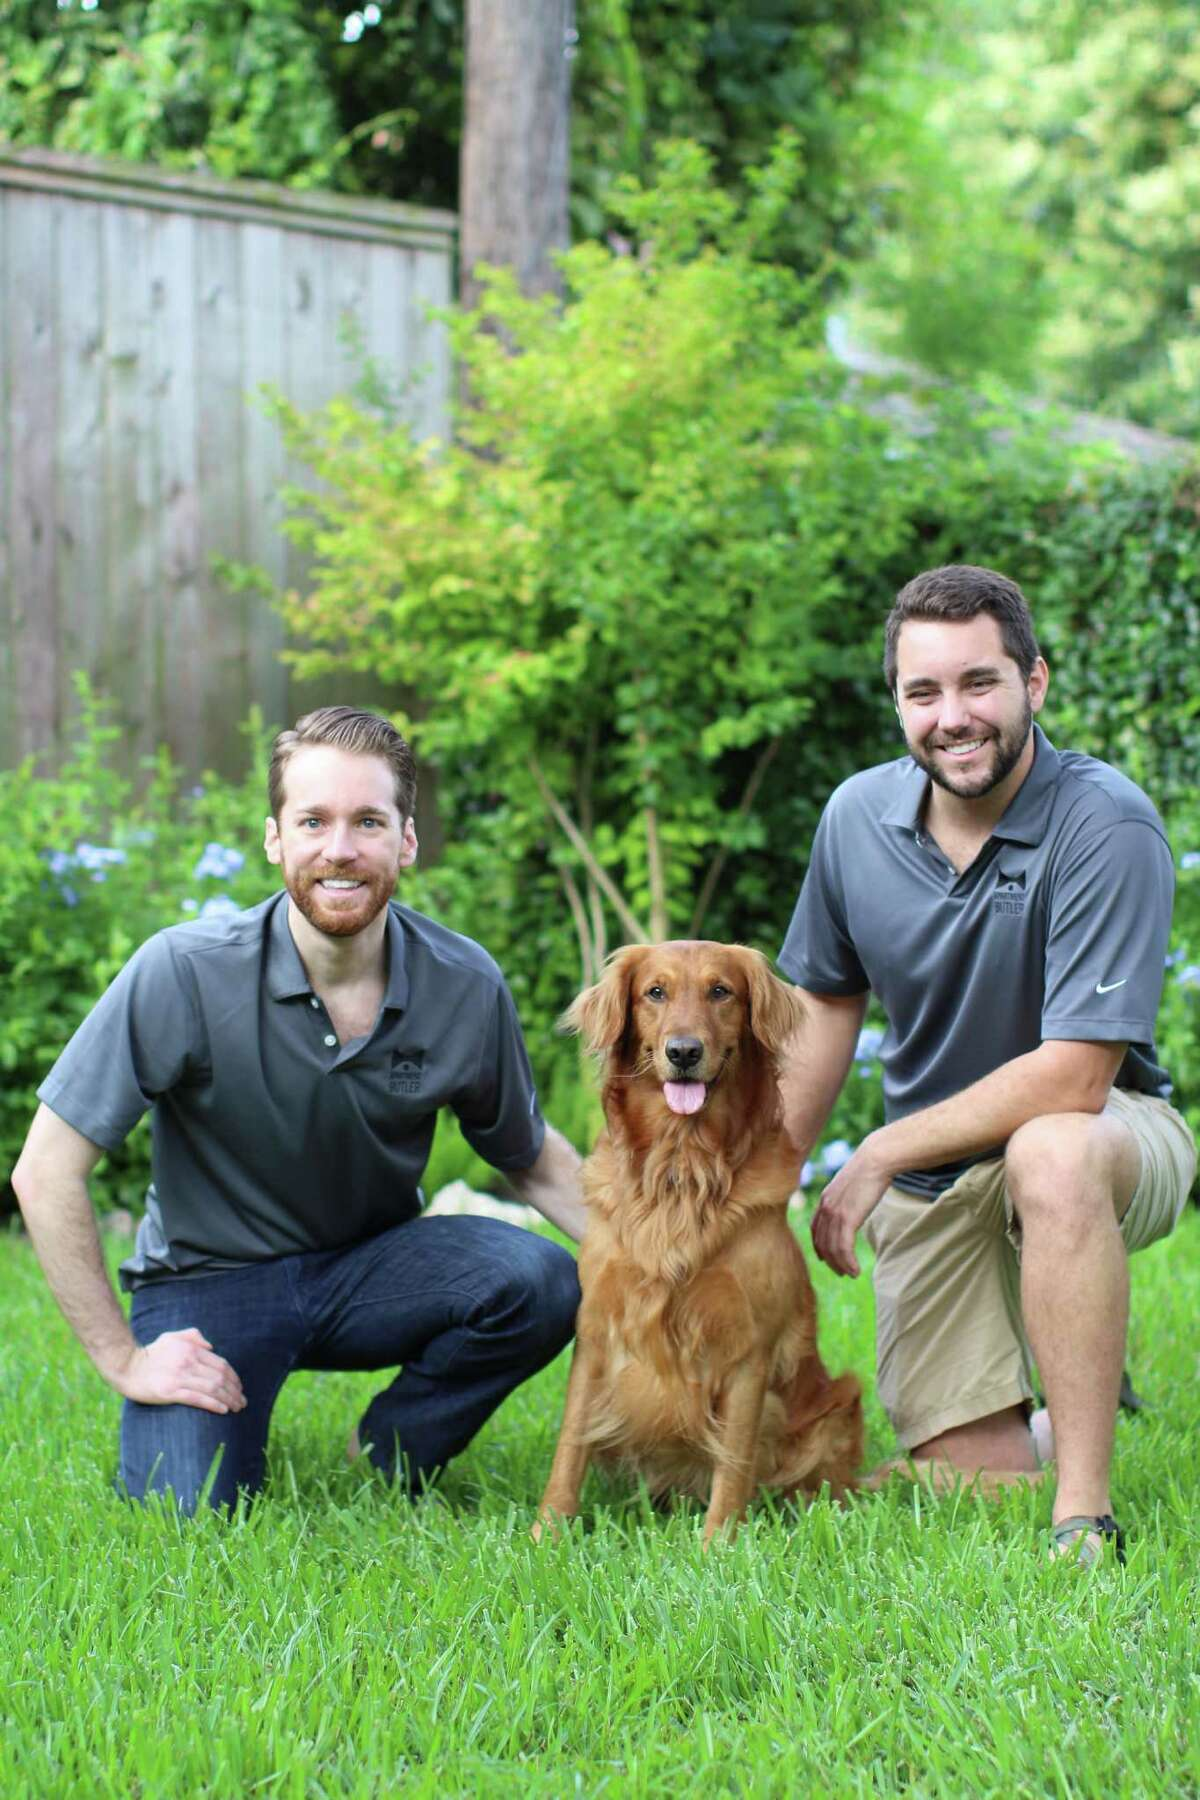 Ben Johnson, founder and CEO of Apartment Butler, left, and his brotherGarrett Johnson, operations manager. Residents of communities on the Apartment Butler platform can book services such as housekeeping, pet walking and dry cleaning through a mobile app.